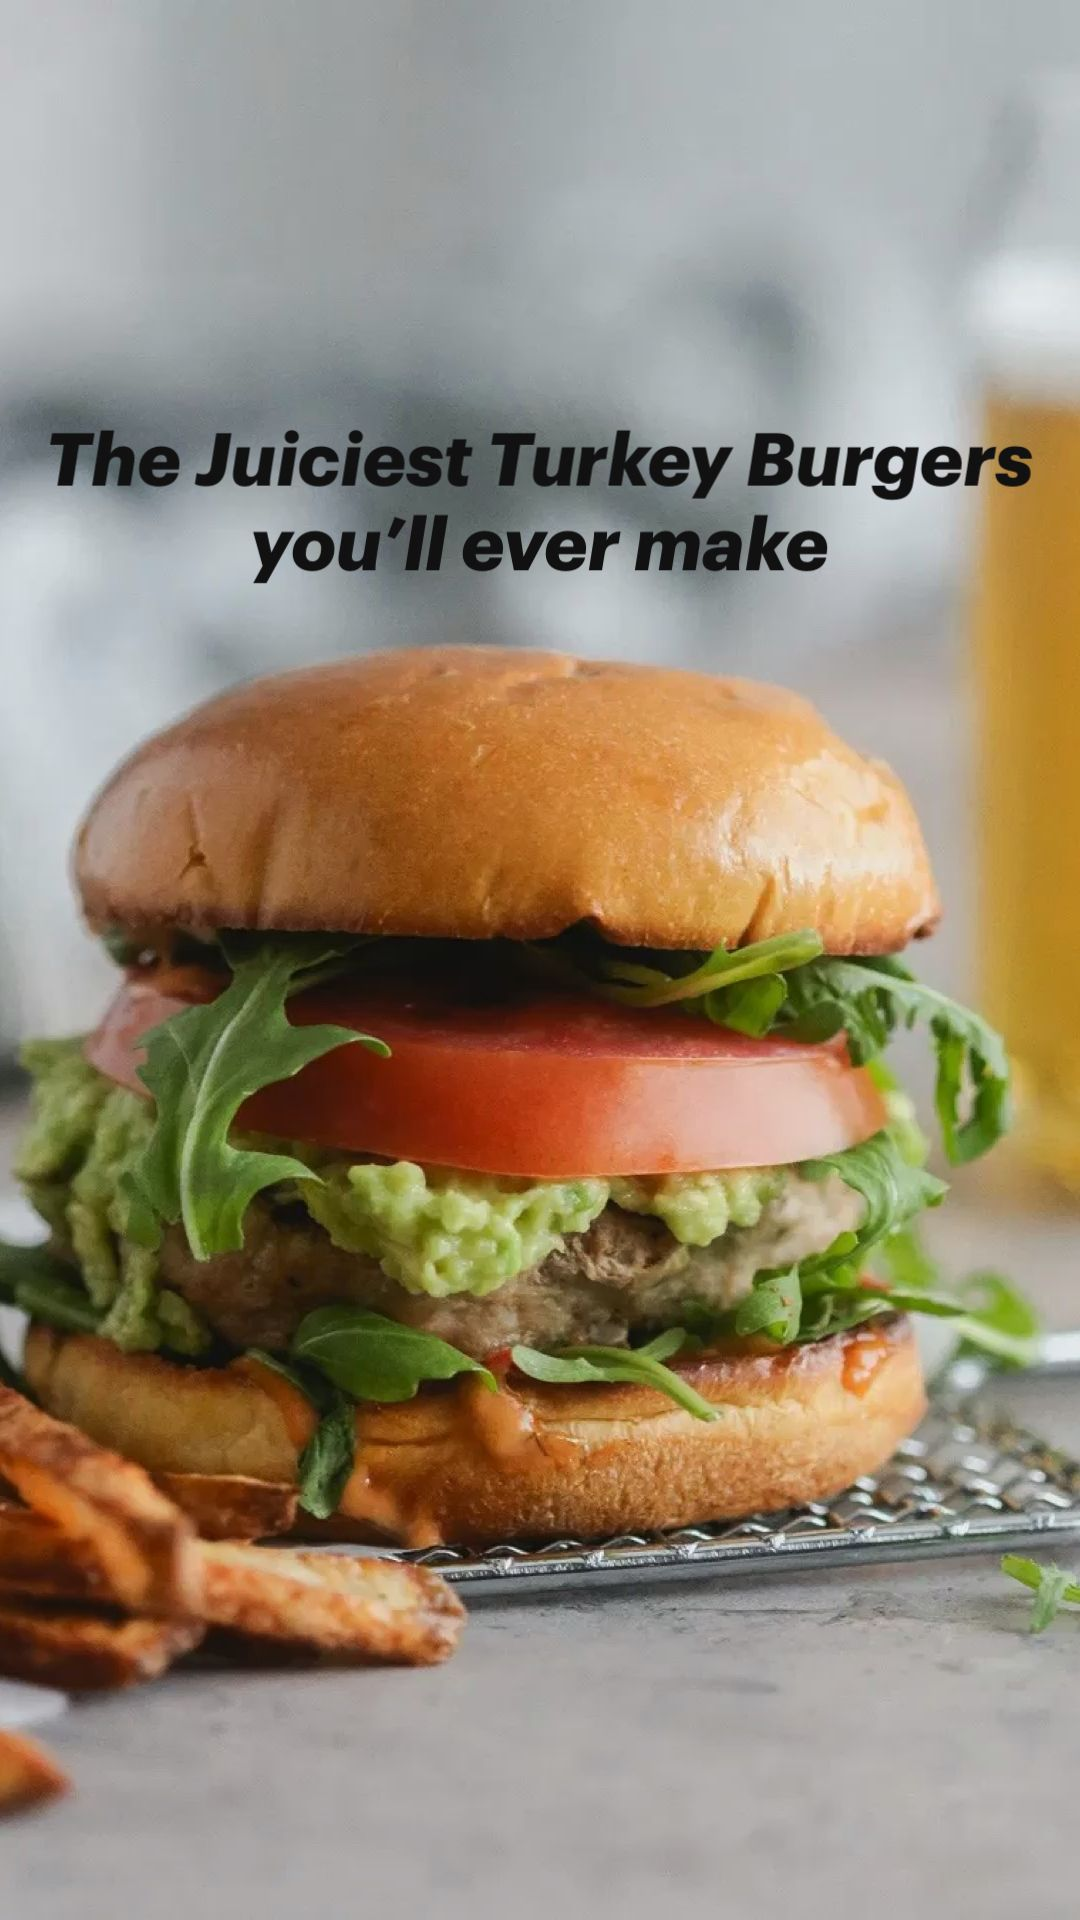 The Juiciest Turkey Burgers you'll ever make